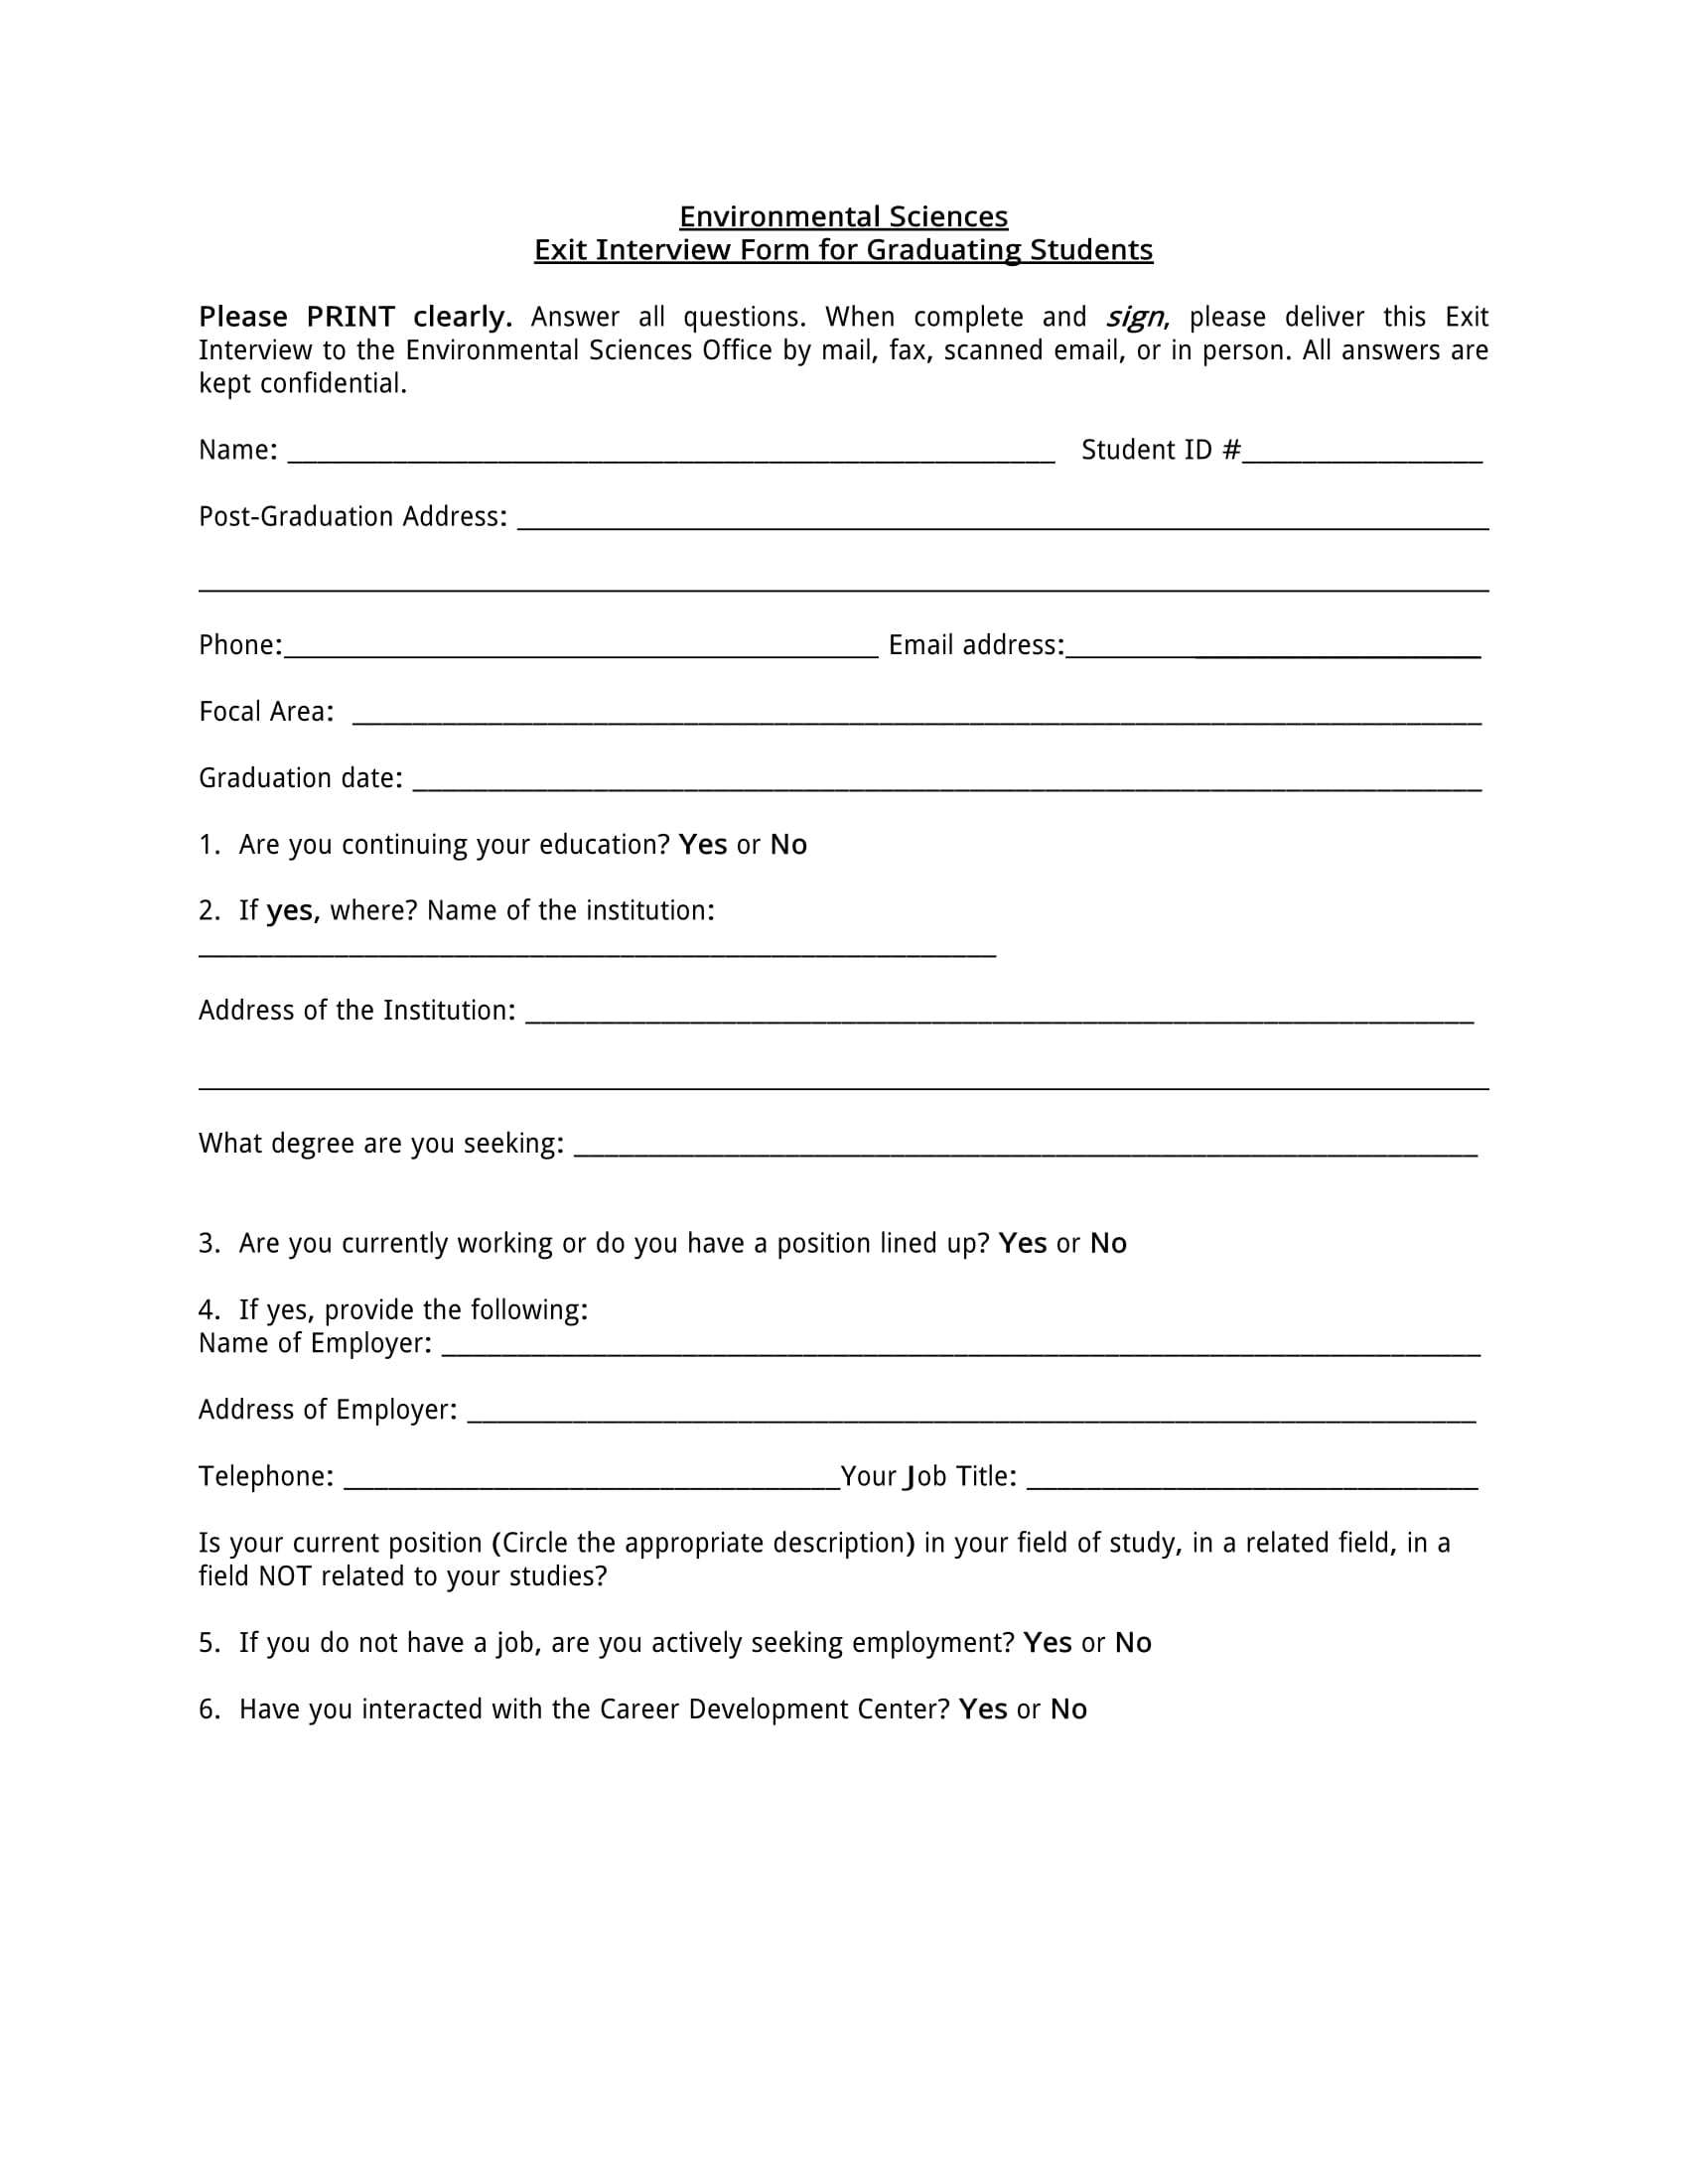 graduating students exit interview form 1